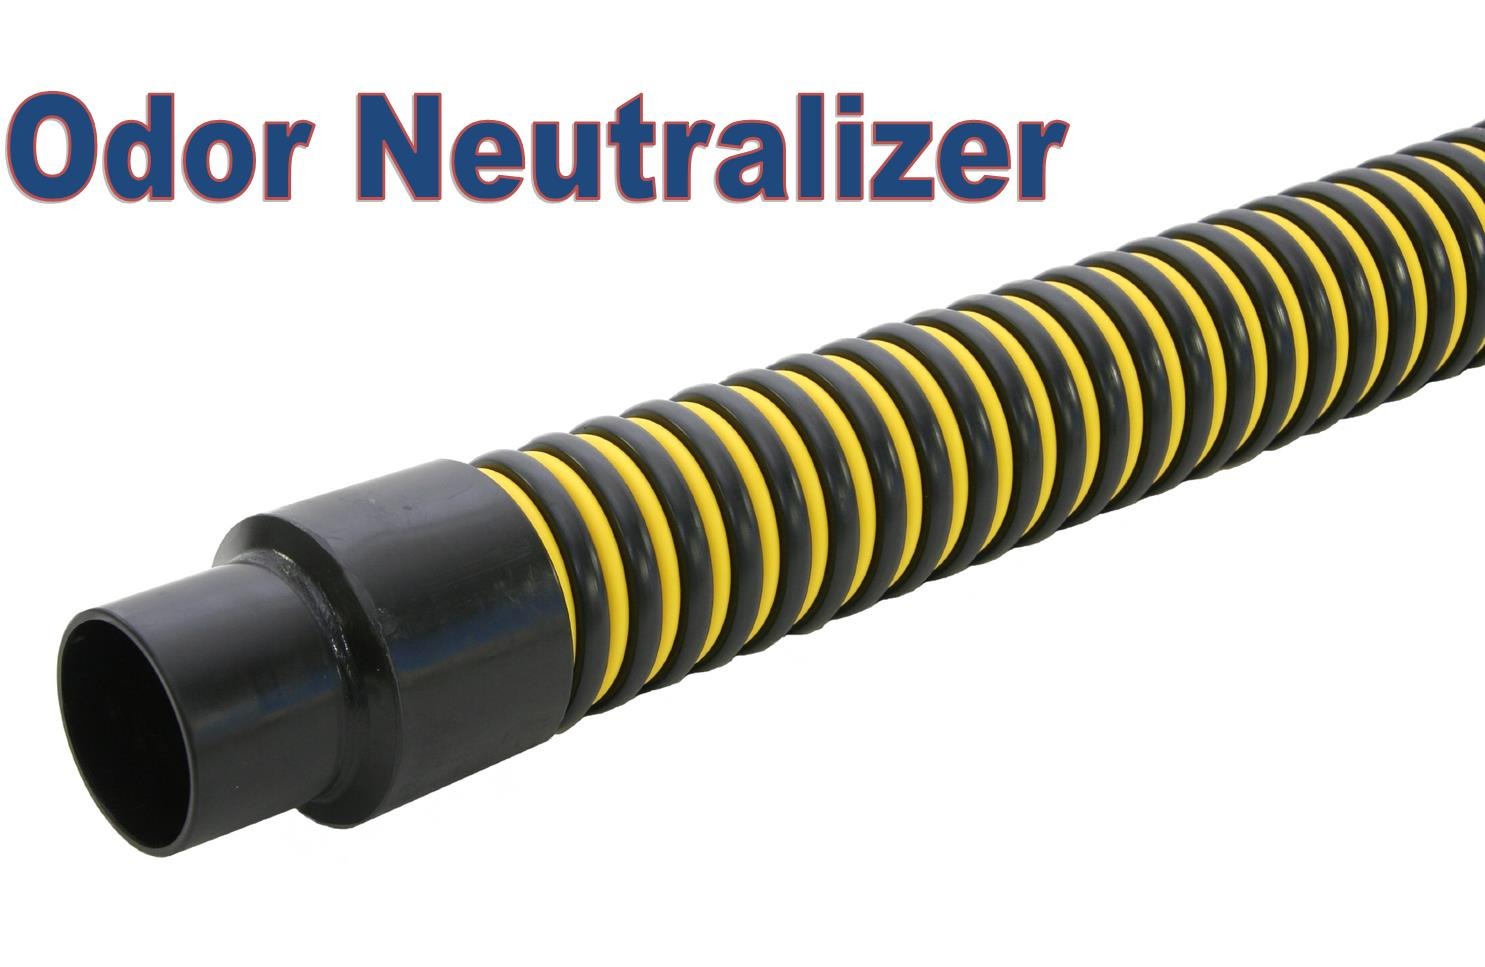 The MCI™ Odor Neutralizer Replacement Hose